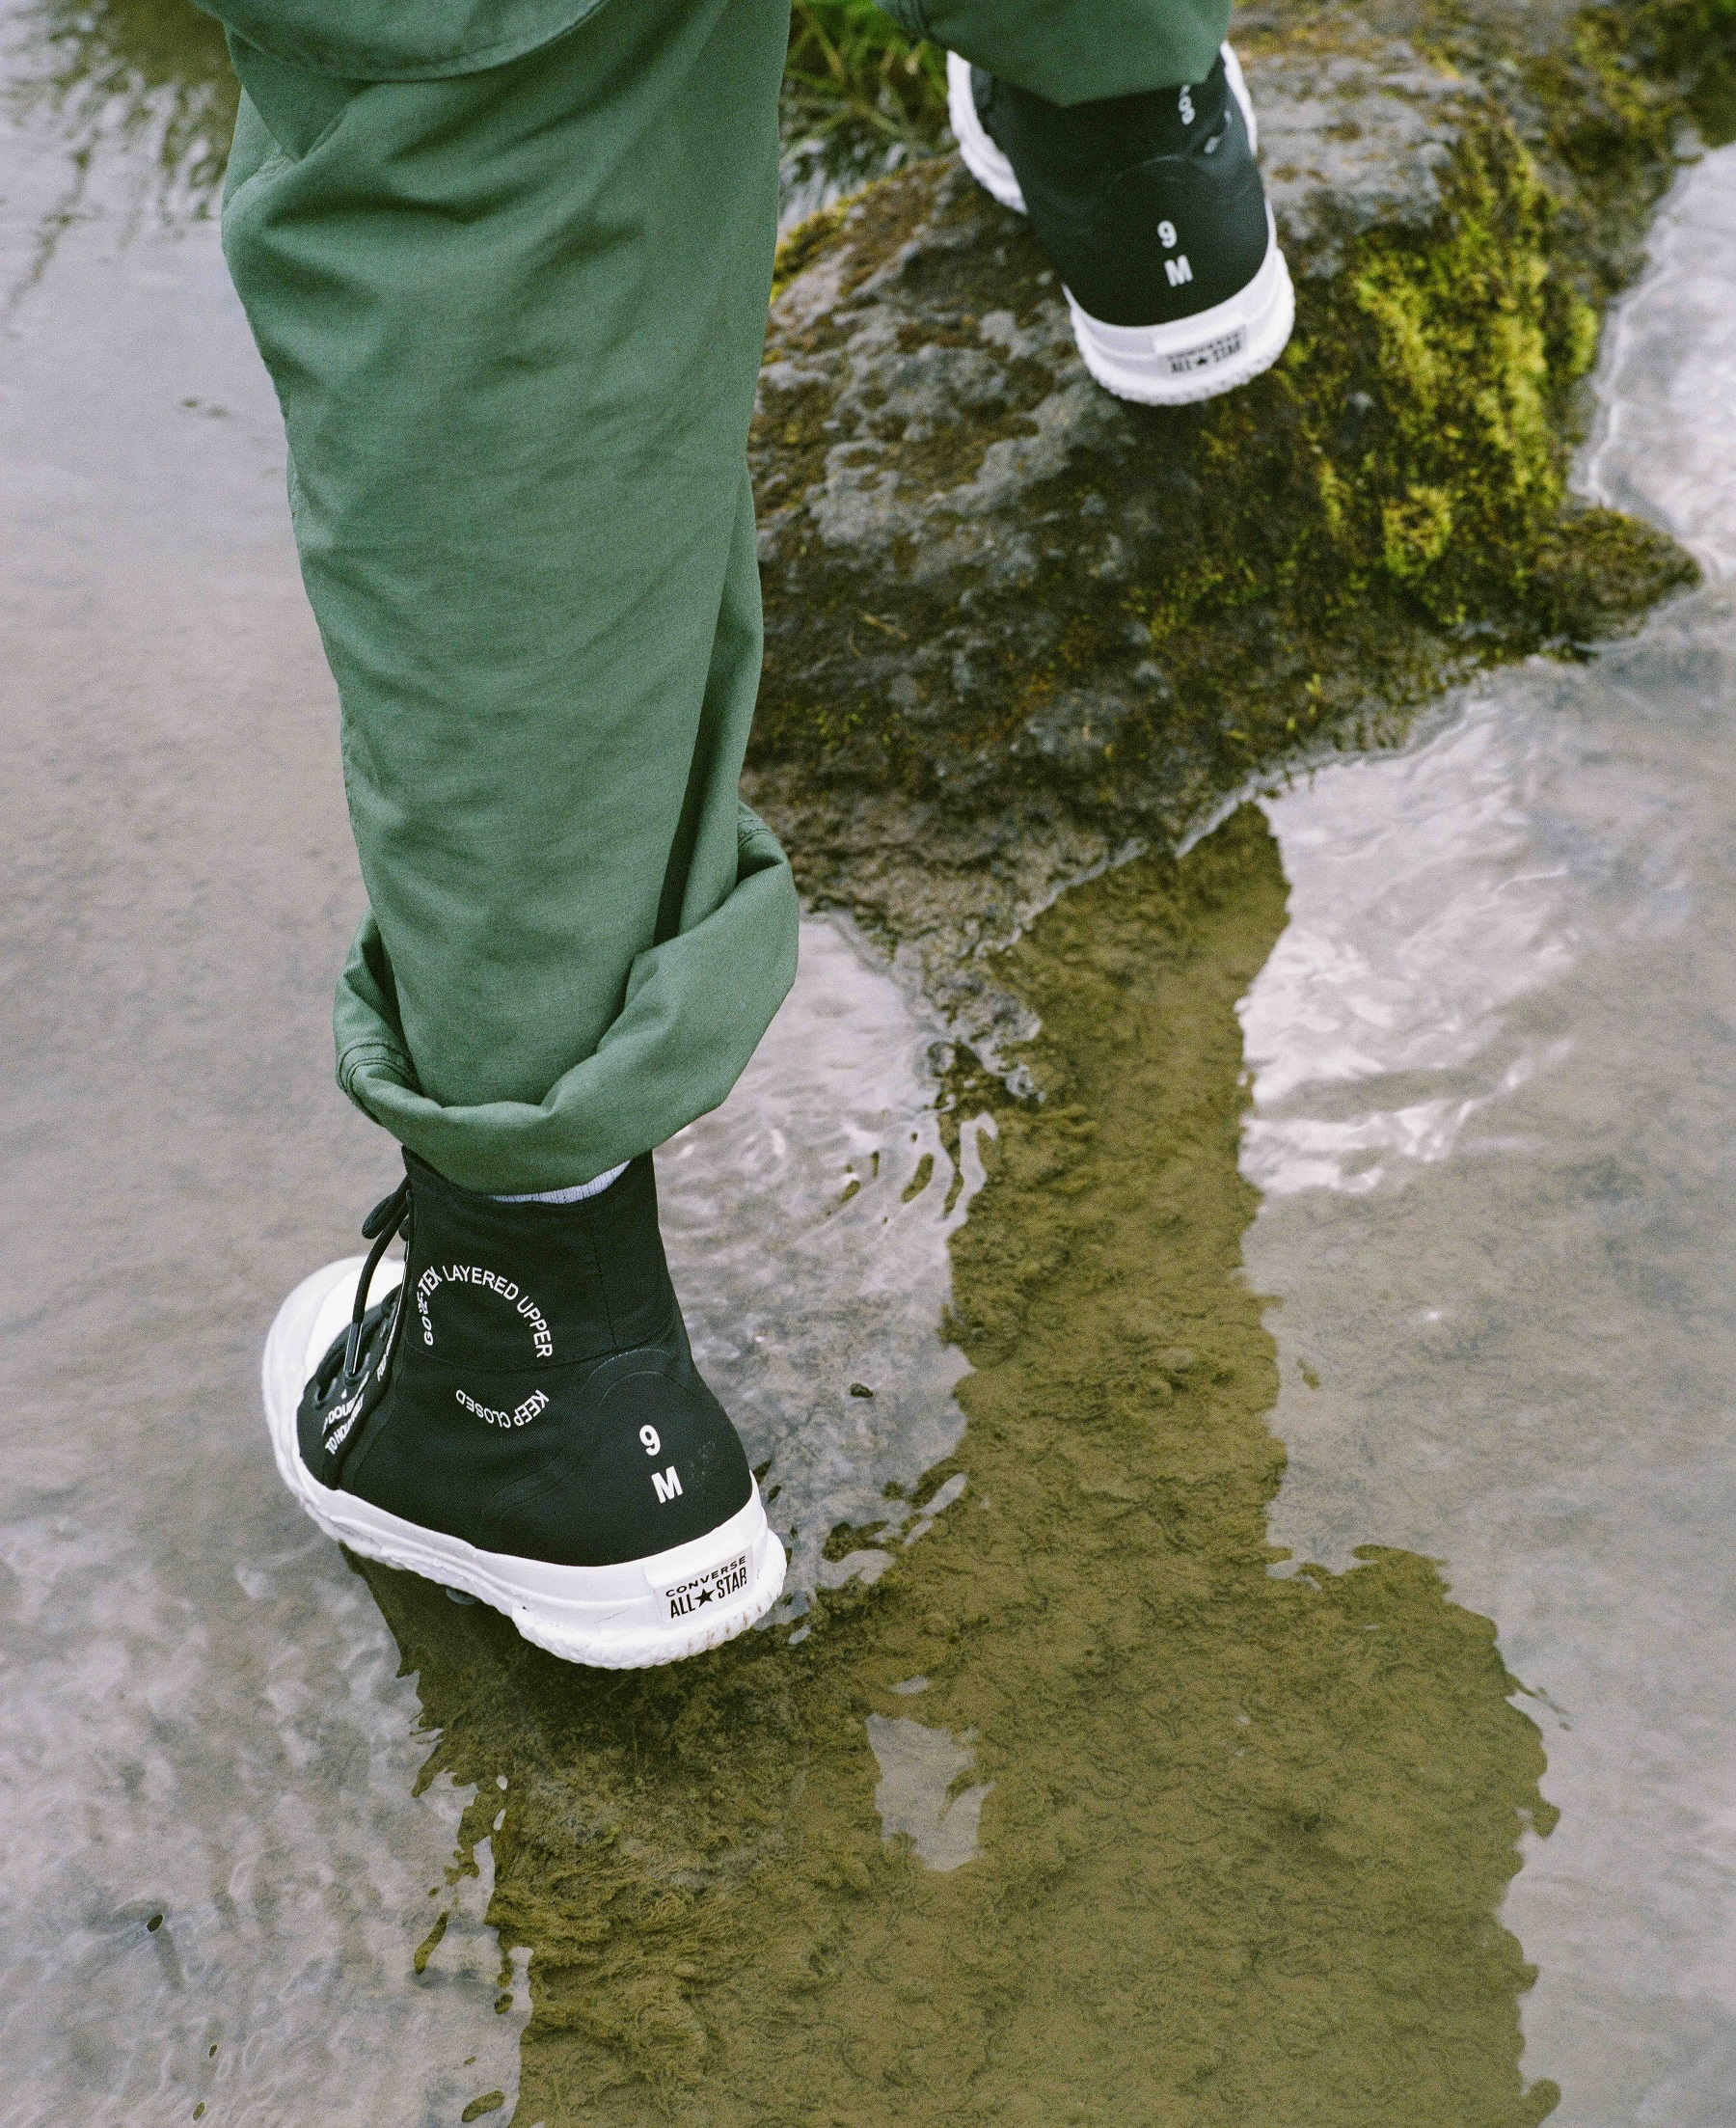 Converse Heightens Their Shoe Game With The Introduction Of Mountain Club -  MASSES 97d3016a5